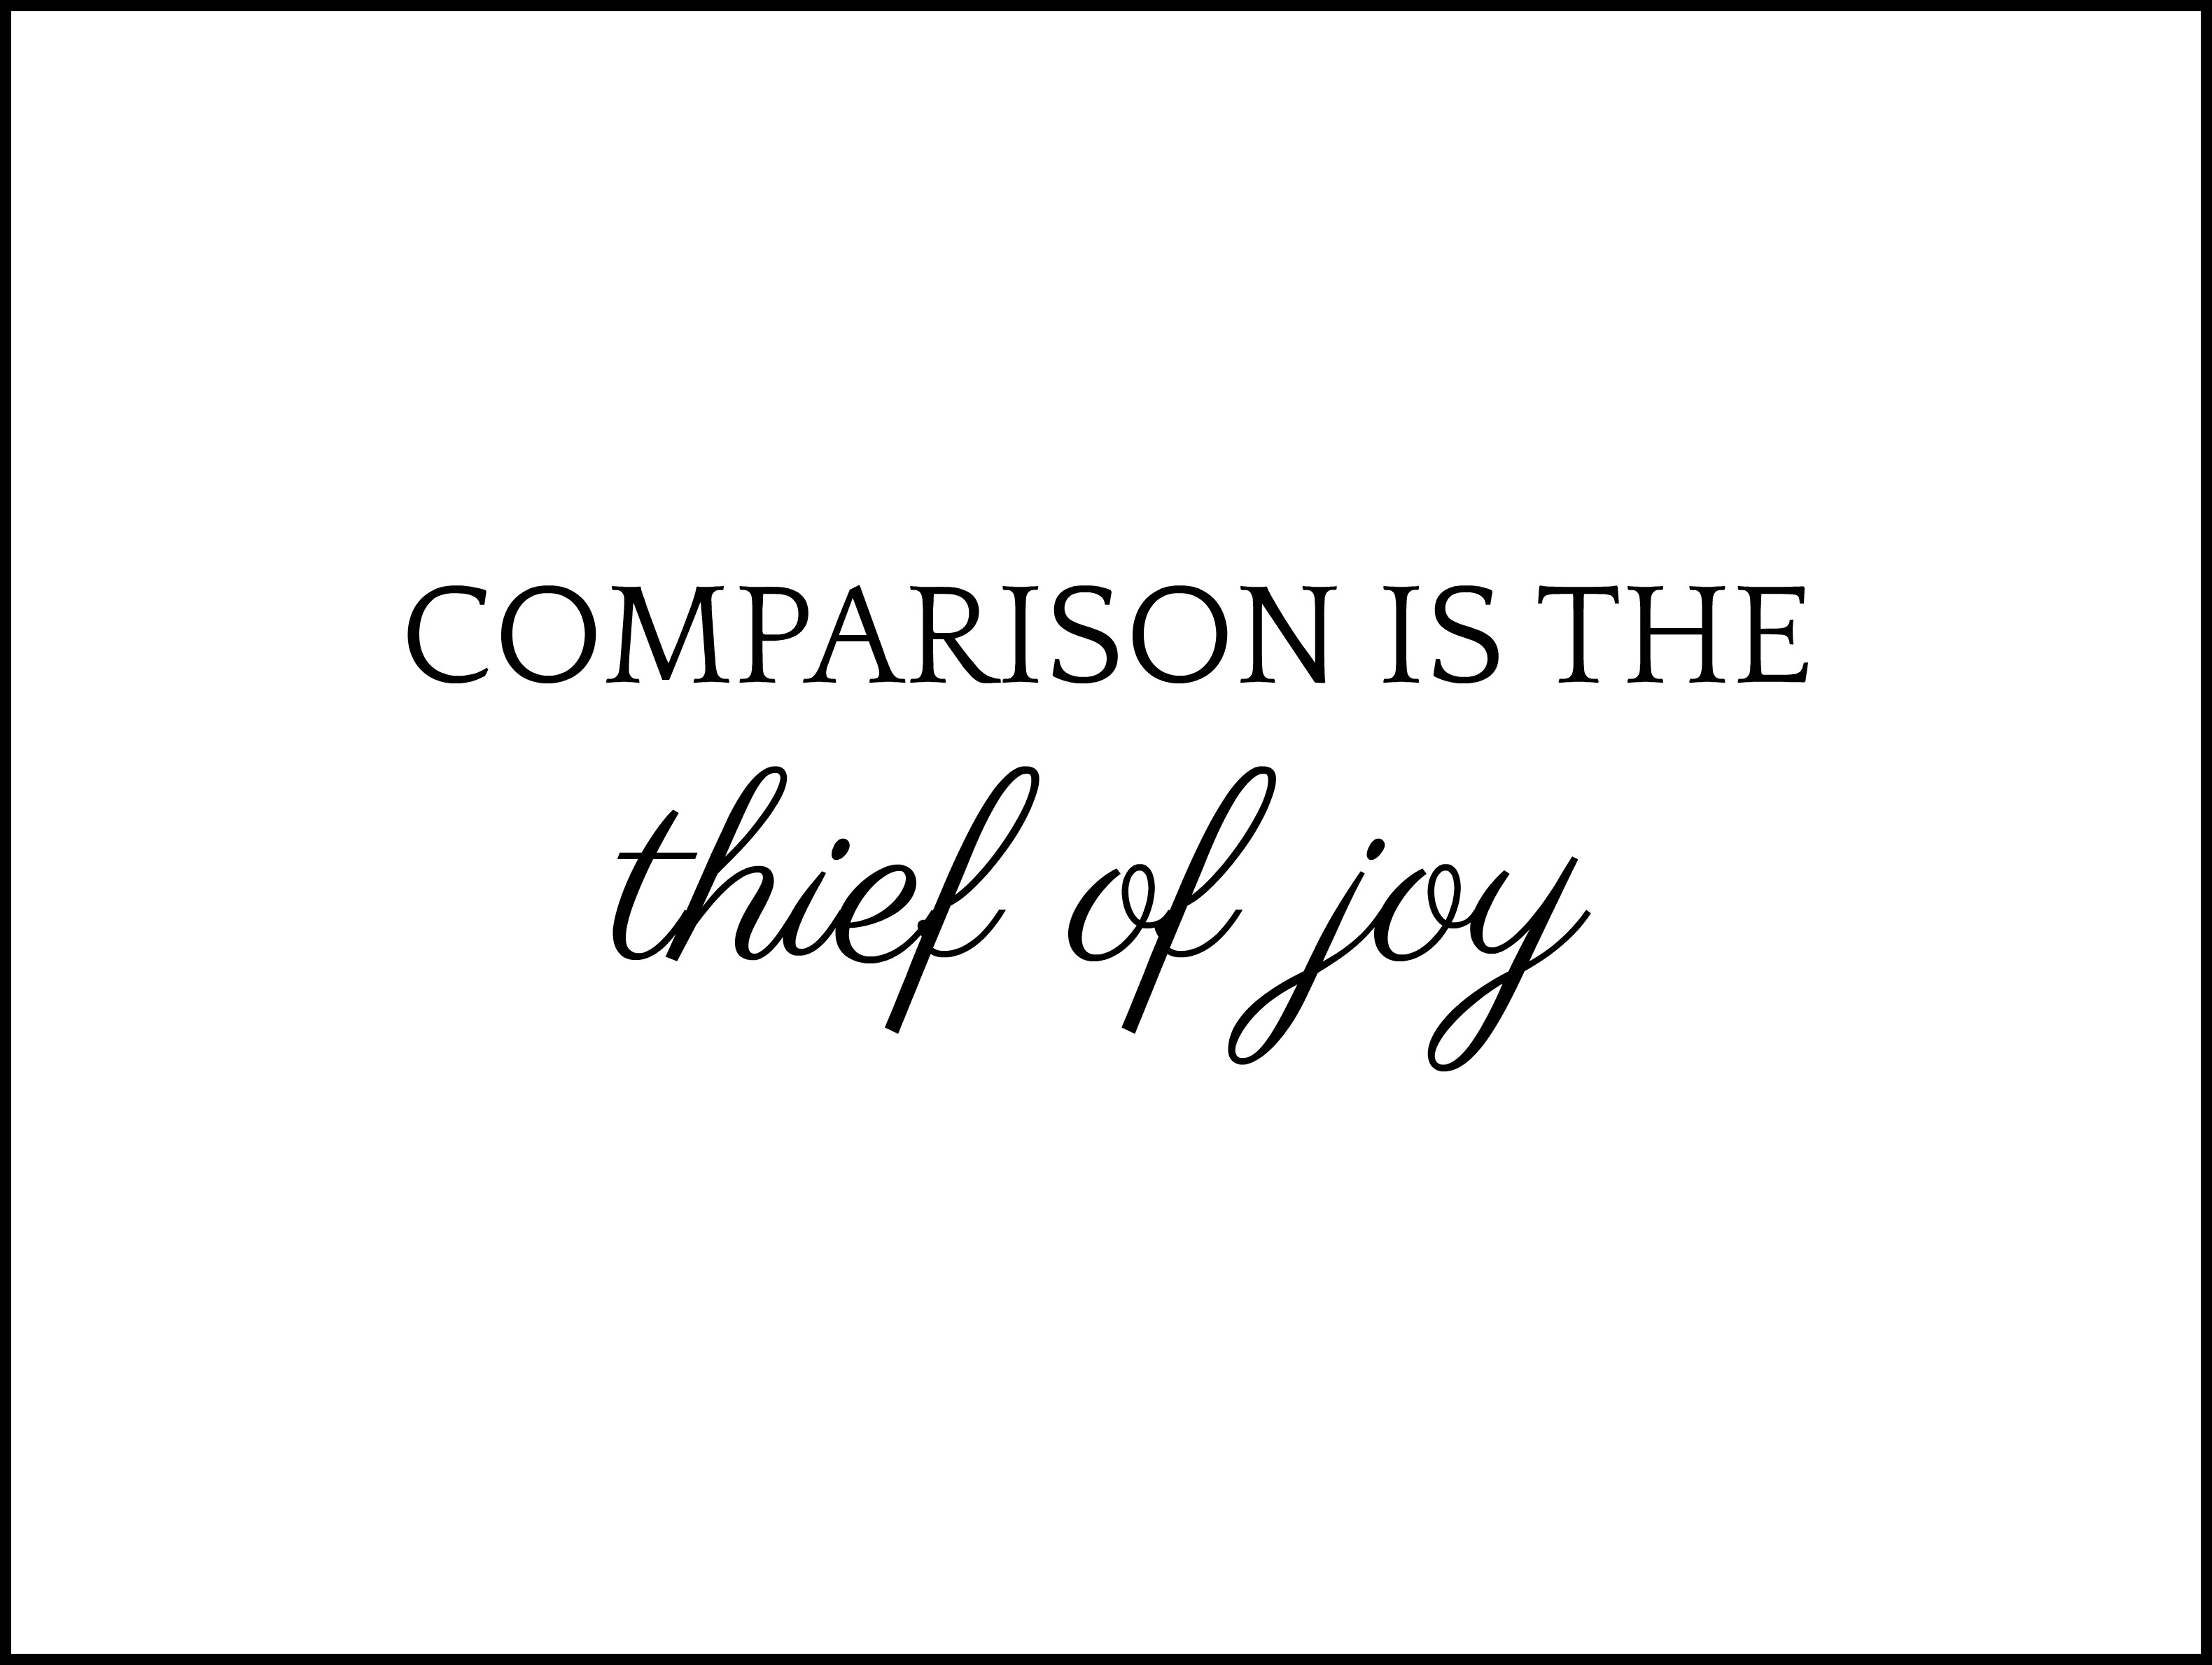 Comparison is the Thief of Joy #Printable #Inspiration - Simple Sojourns